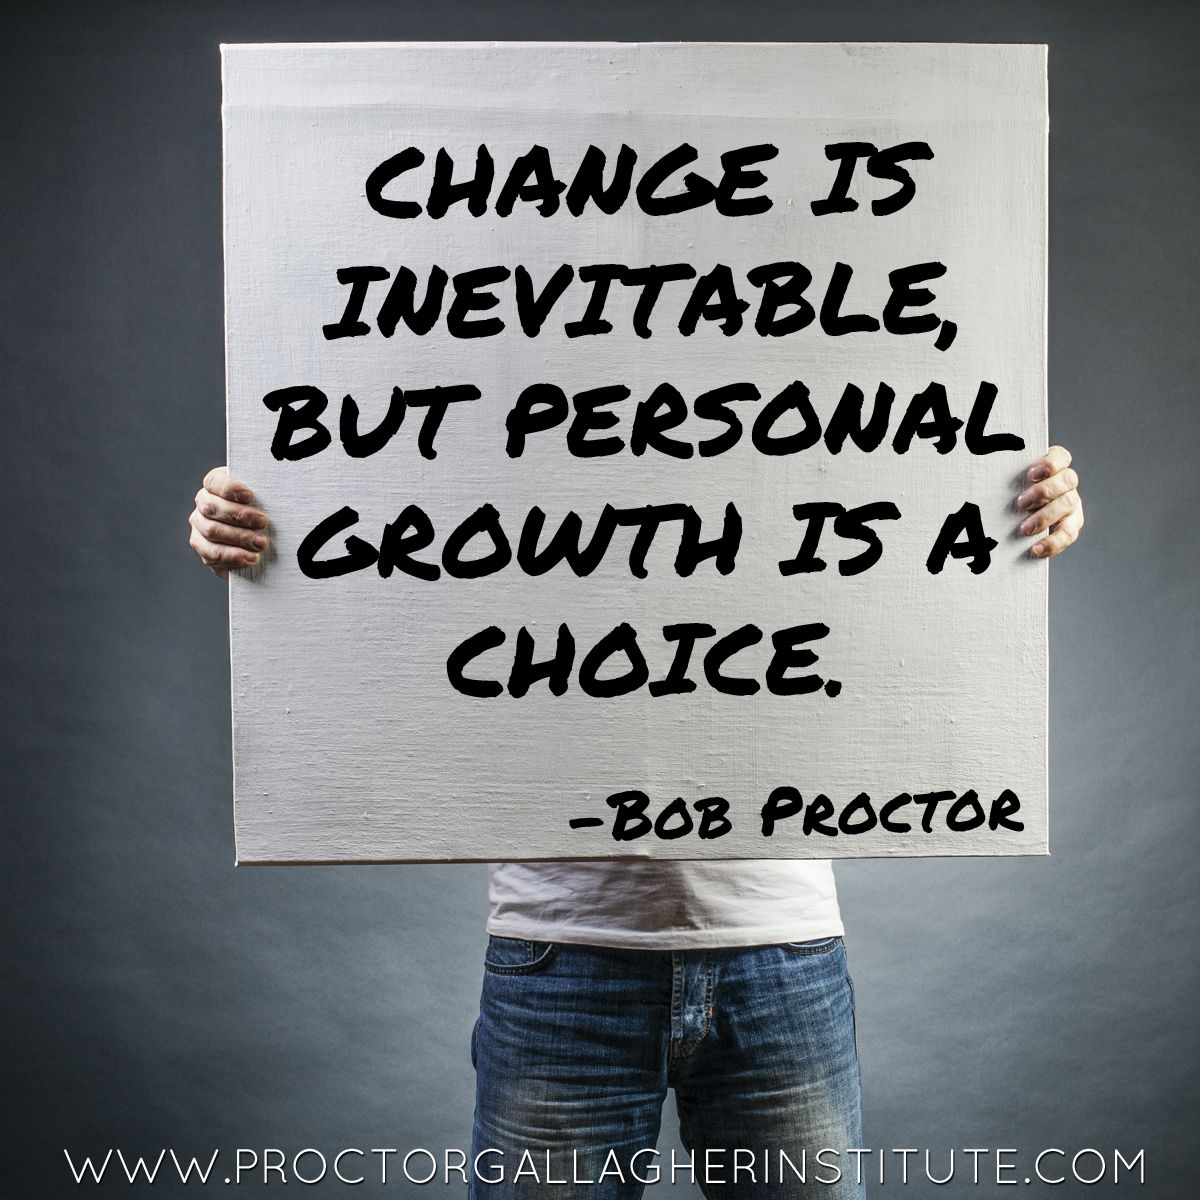 Personal Growth Quotes Change Is Inevitable But Personal Growth Is A Choicebob Proctor